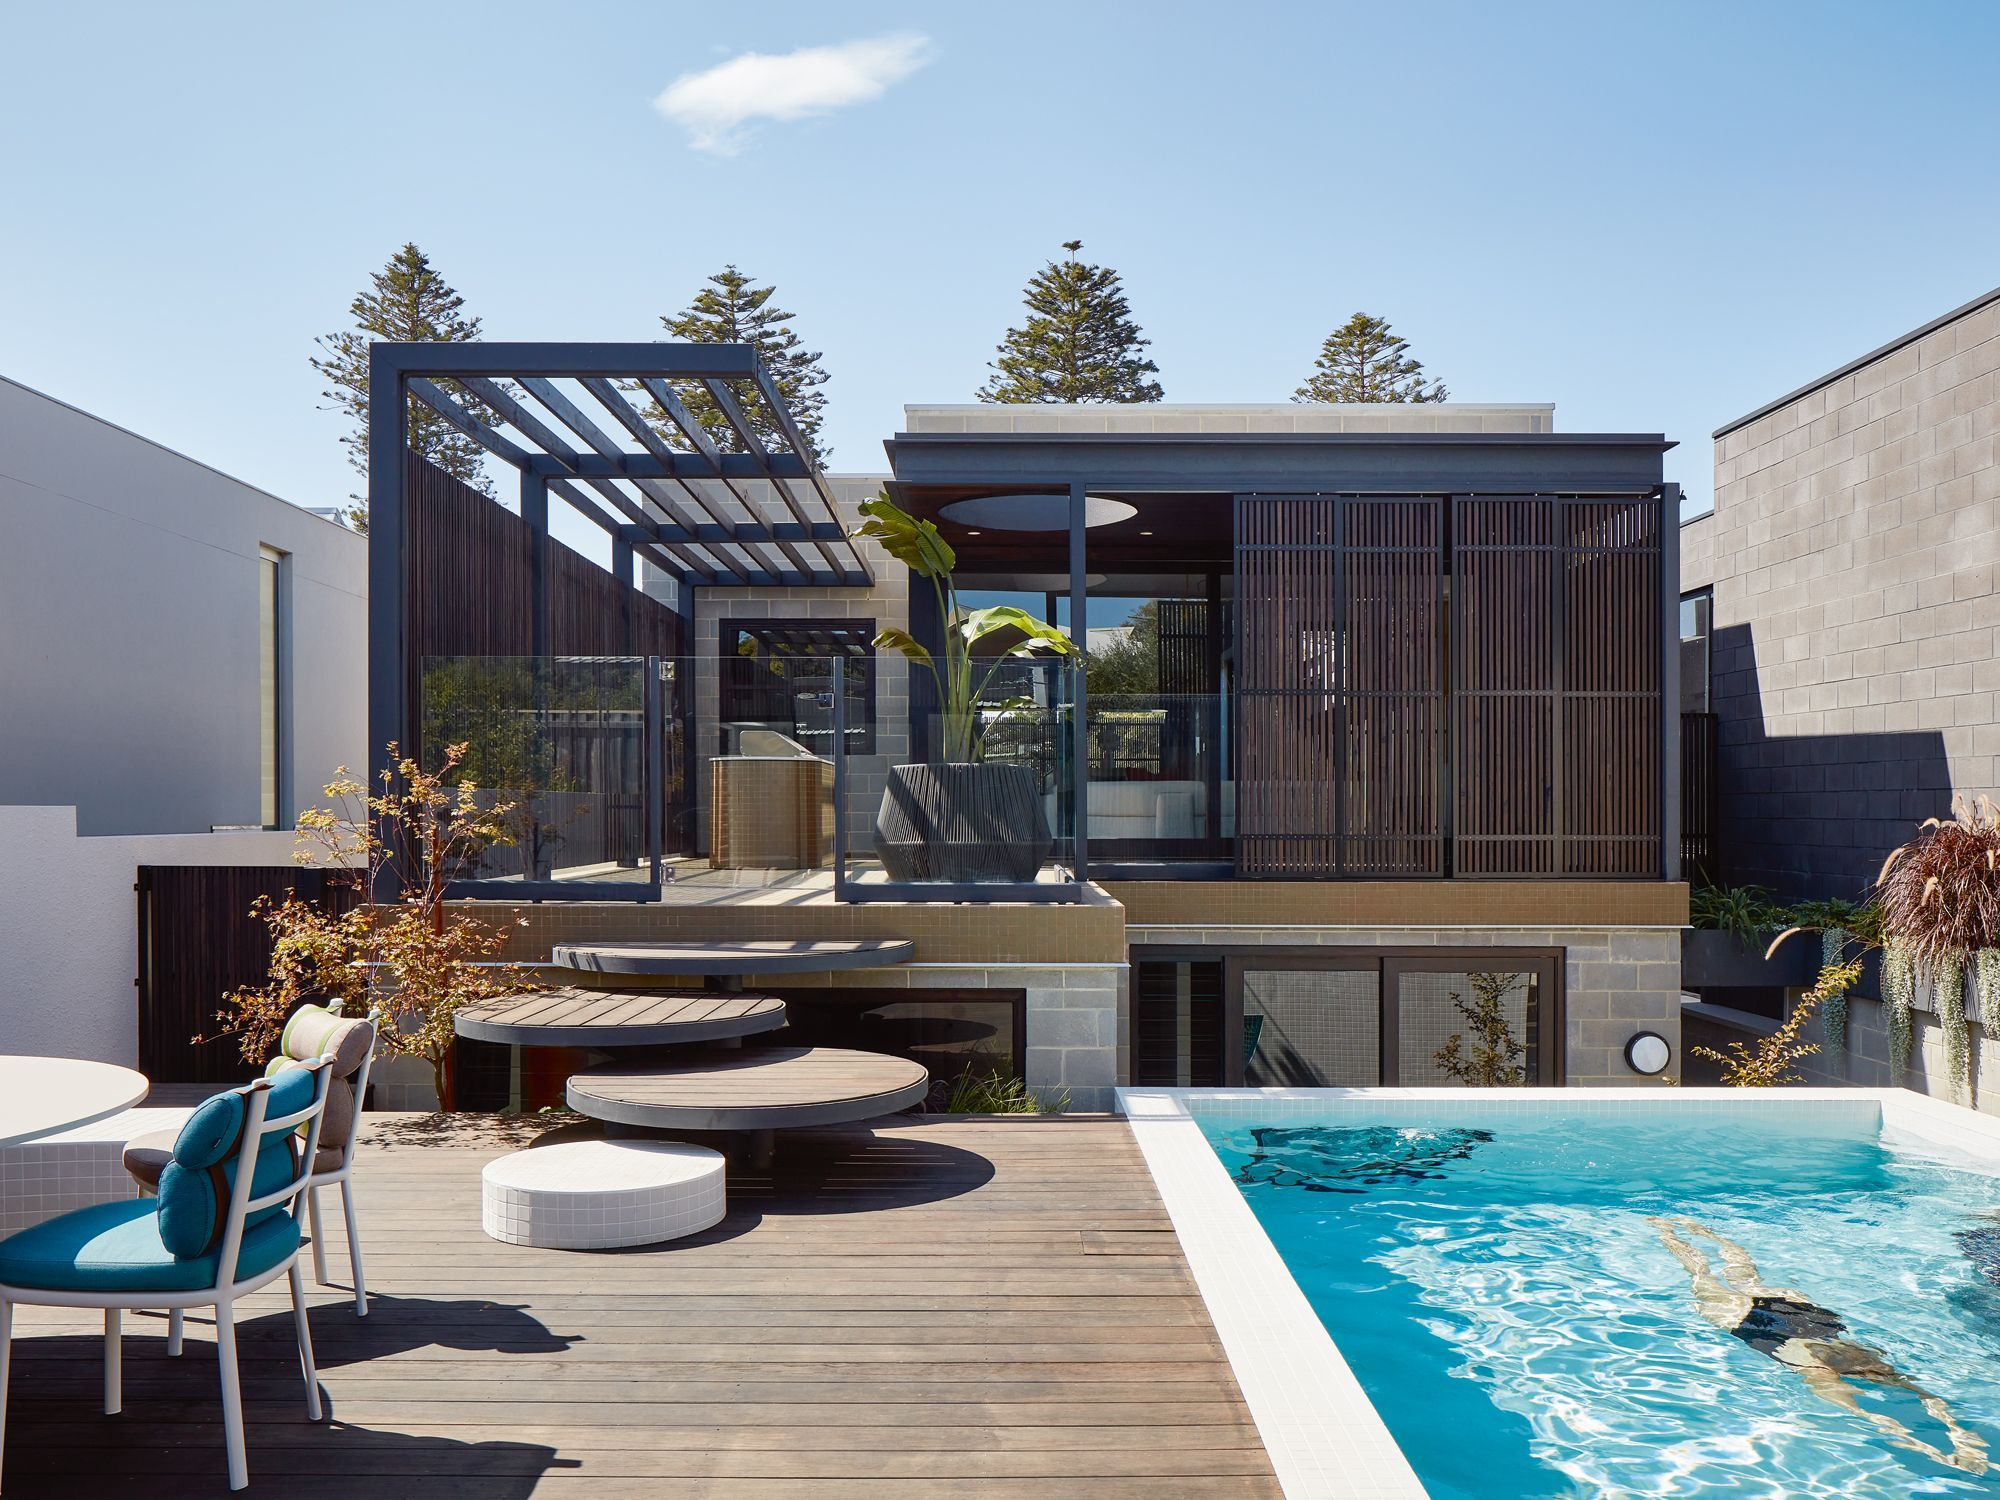 The Shutter House, designed by State of Kin (Photography: Jack Lovel & Sophie Pearce)